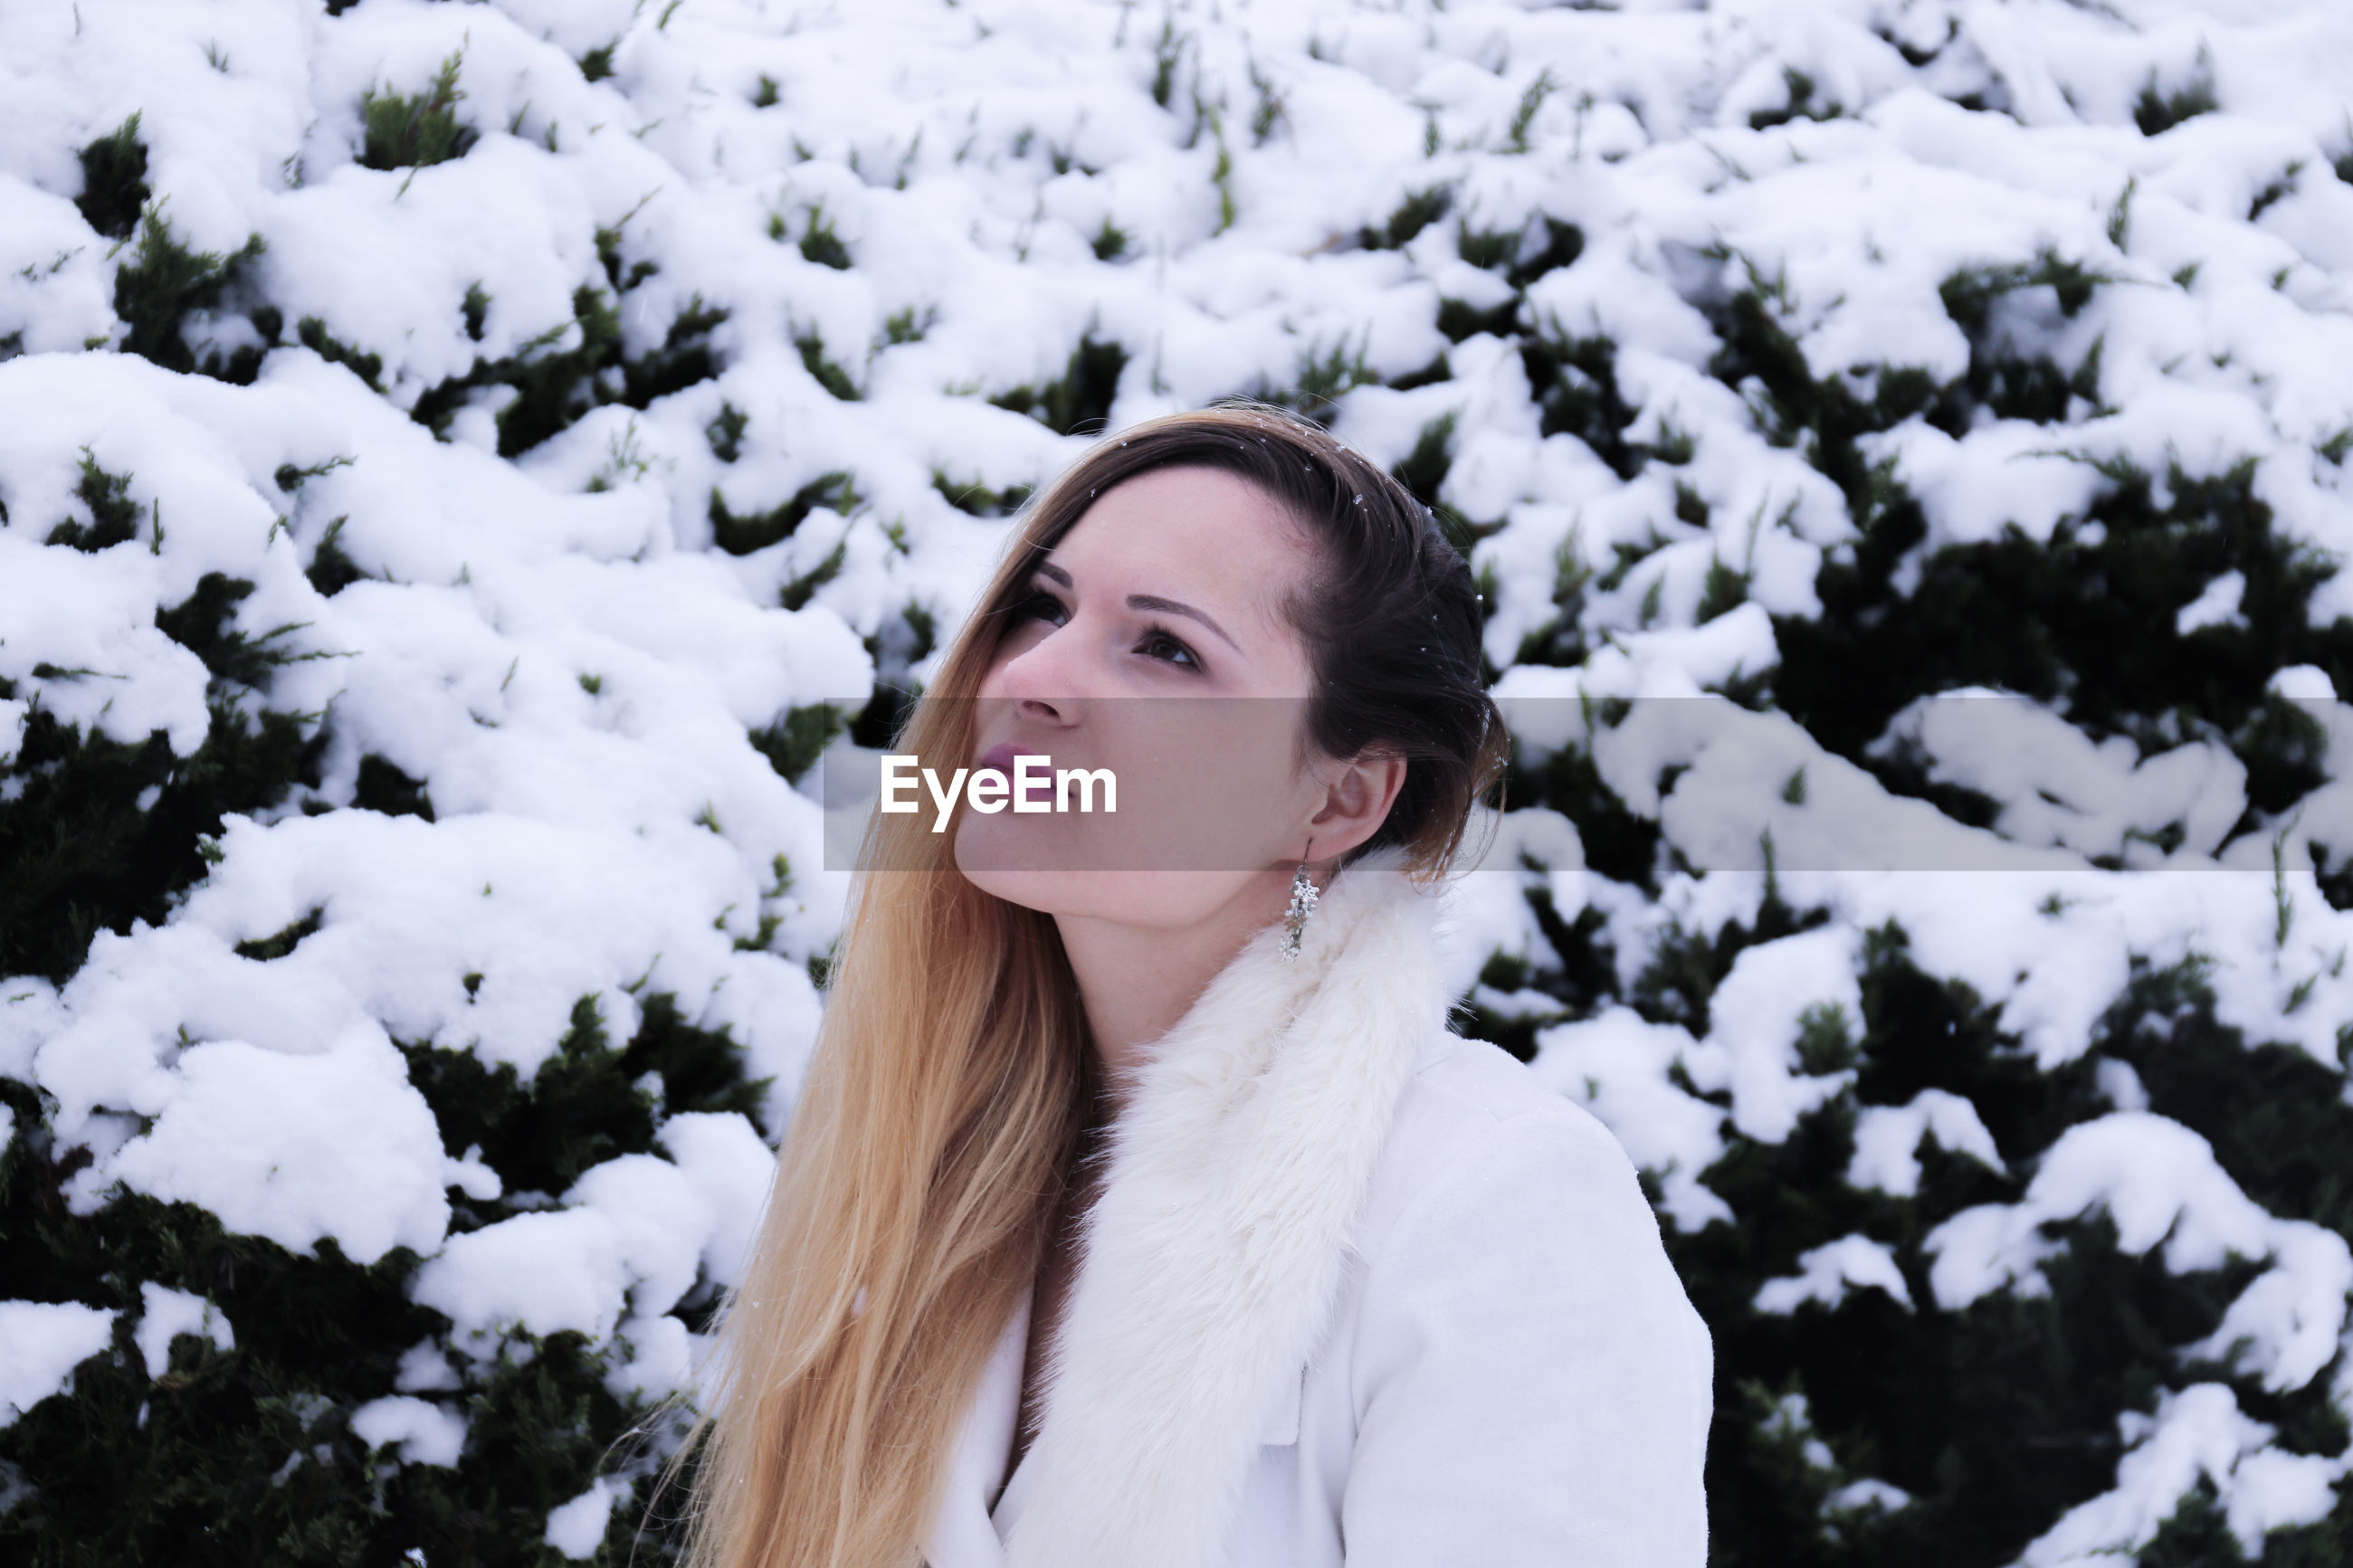 Woman looking away against snowy plants during winter